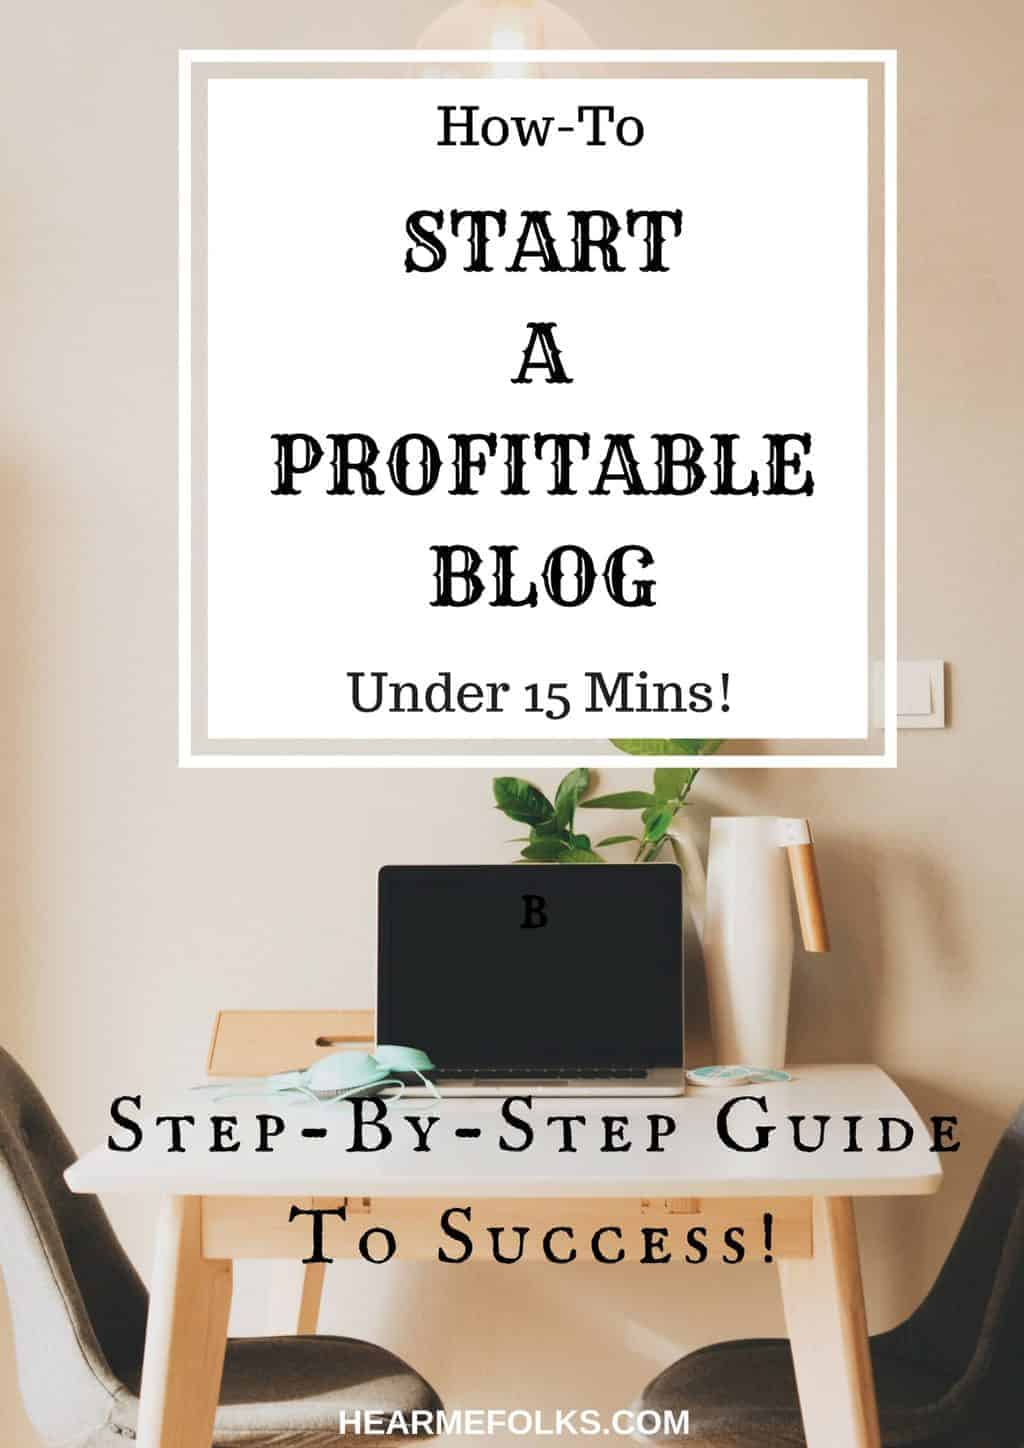 Step-by-Step Guide to Start A Profitable Blog in 15 Minutes!